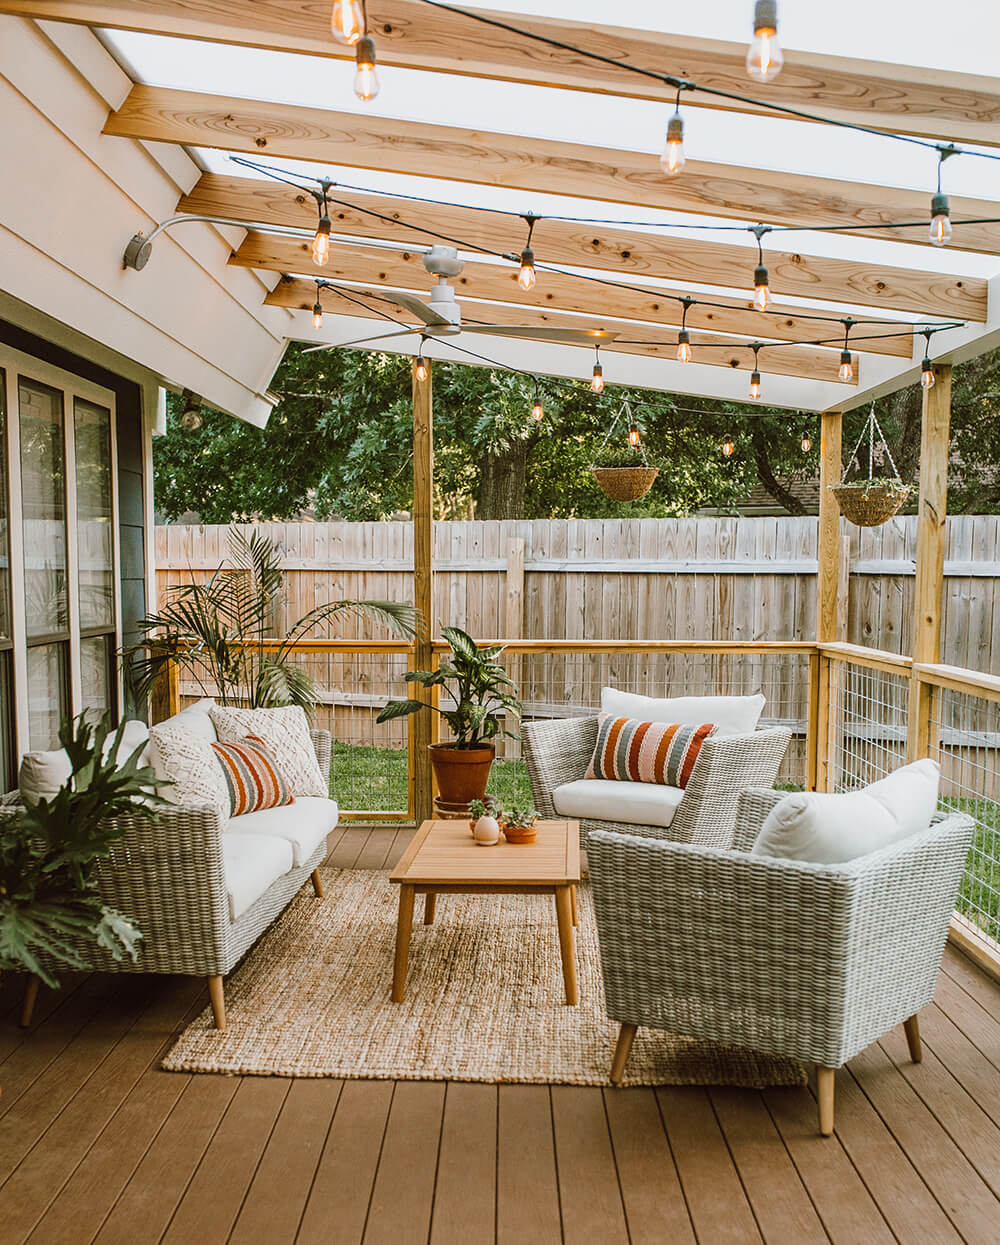 Welcoming Backyard Sitting Ideas for Entertaining